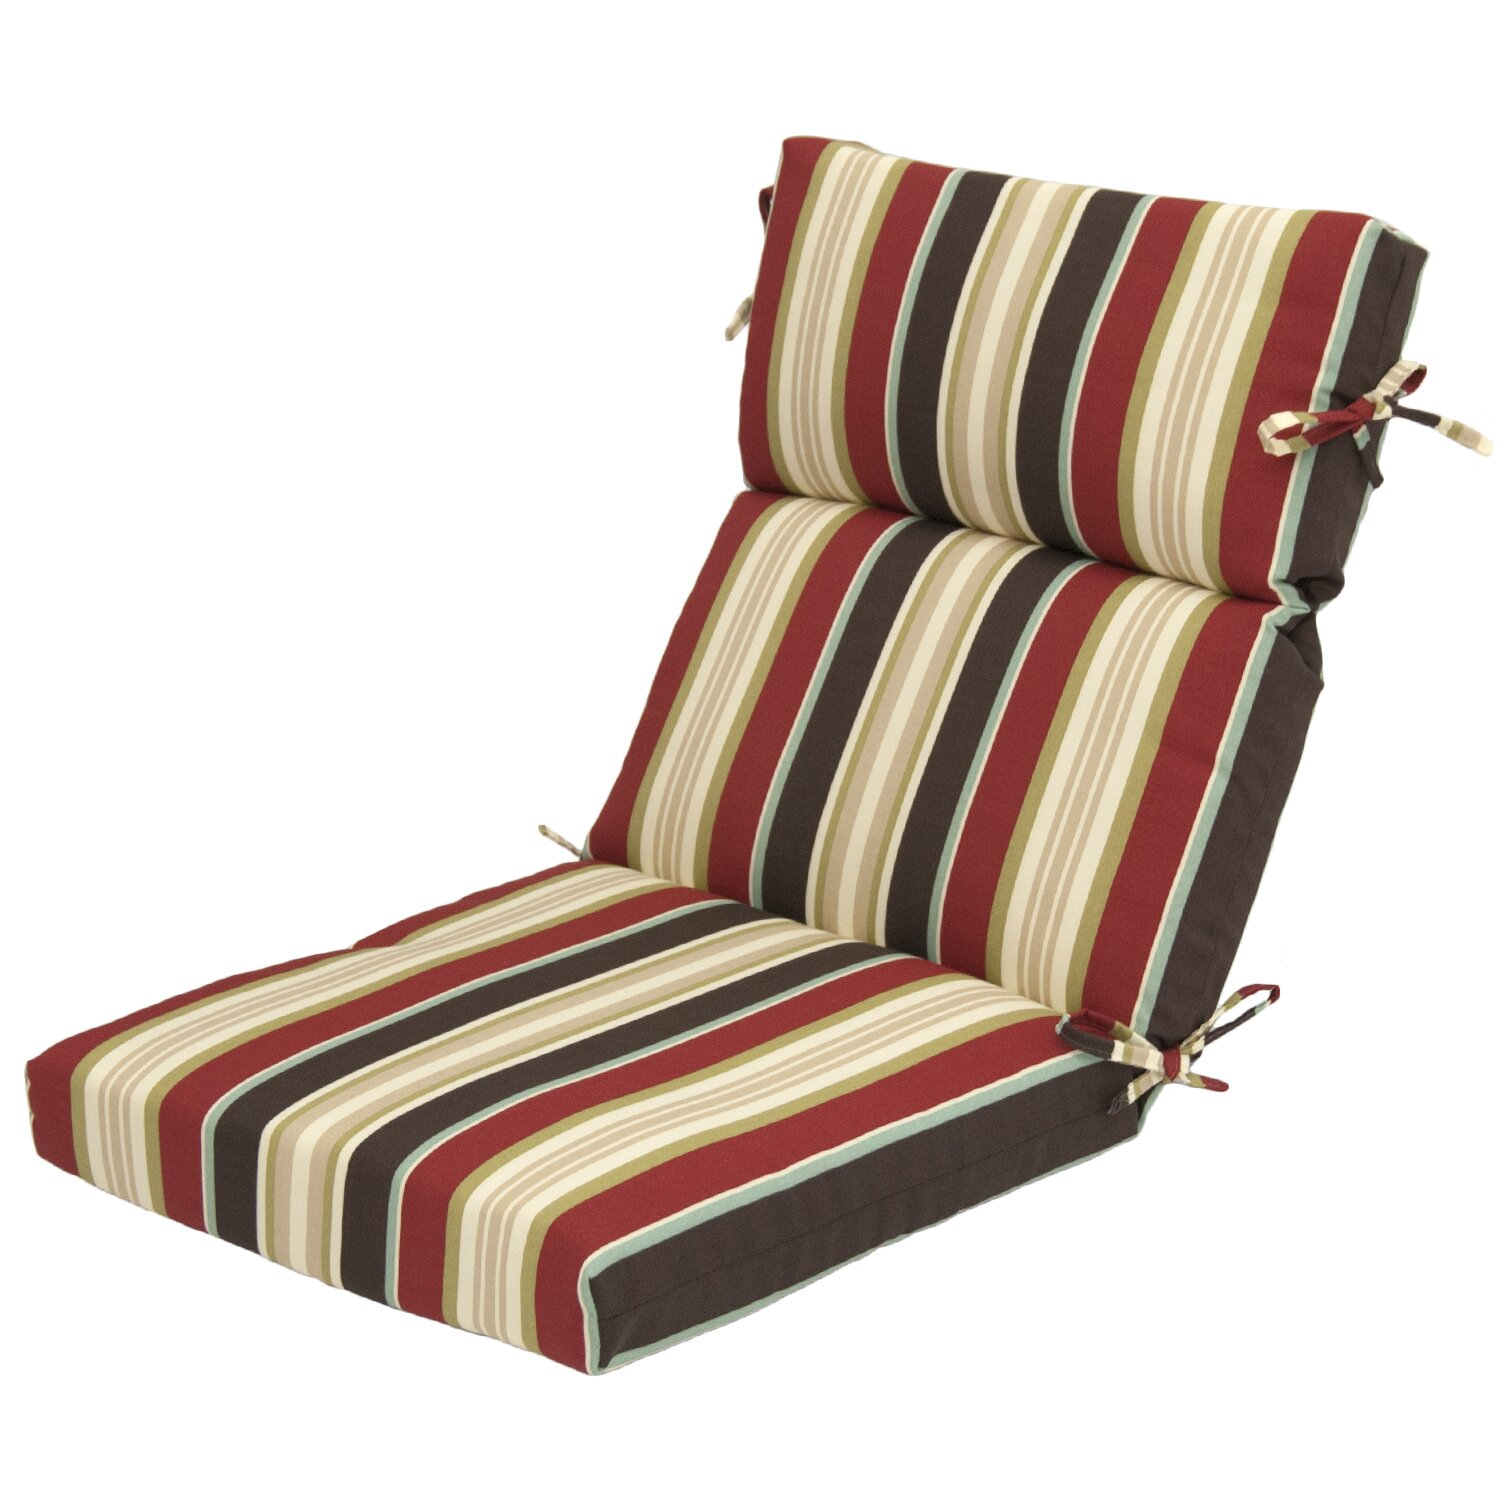 Majestic Outdoor High Back Chair Cushion | Wayfair